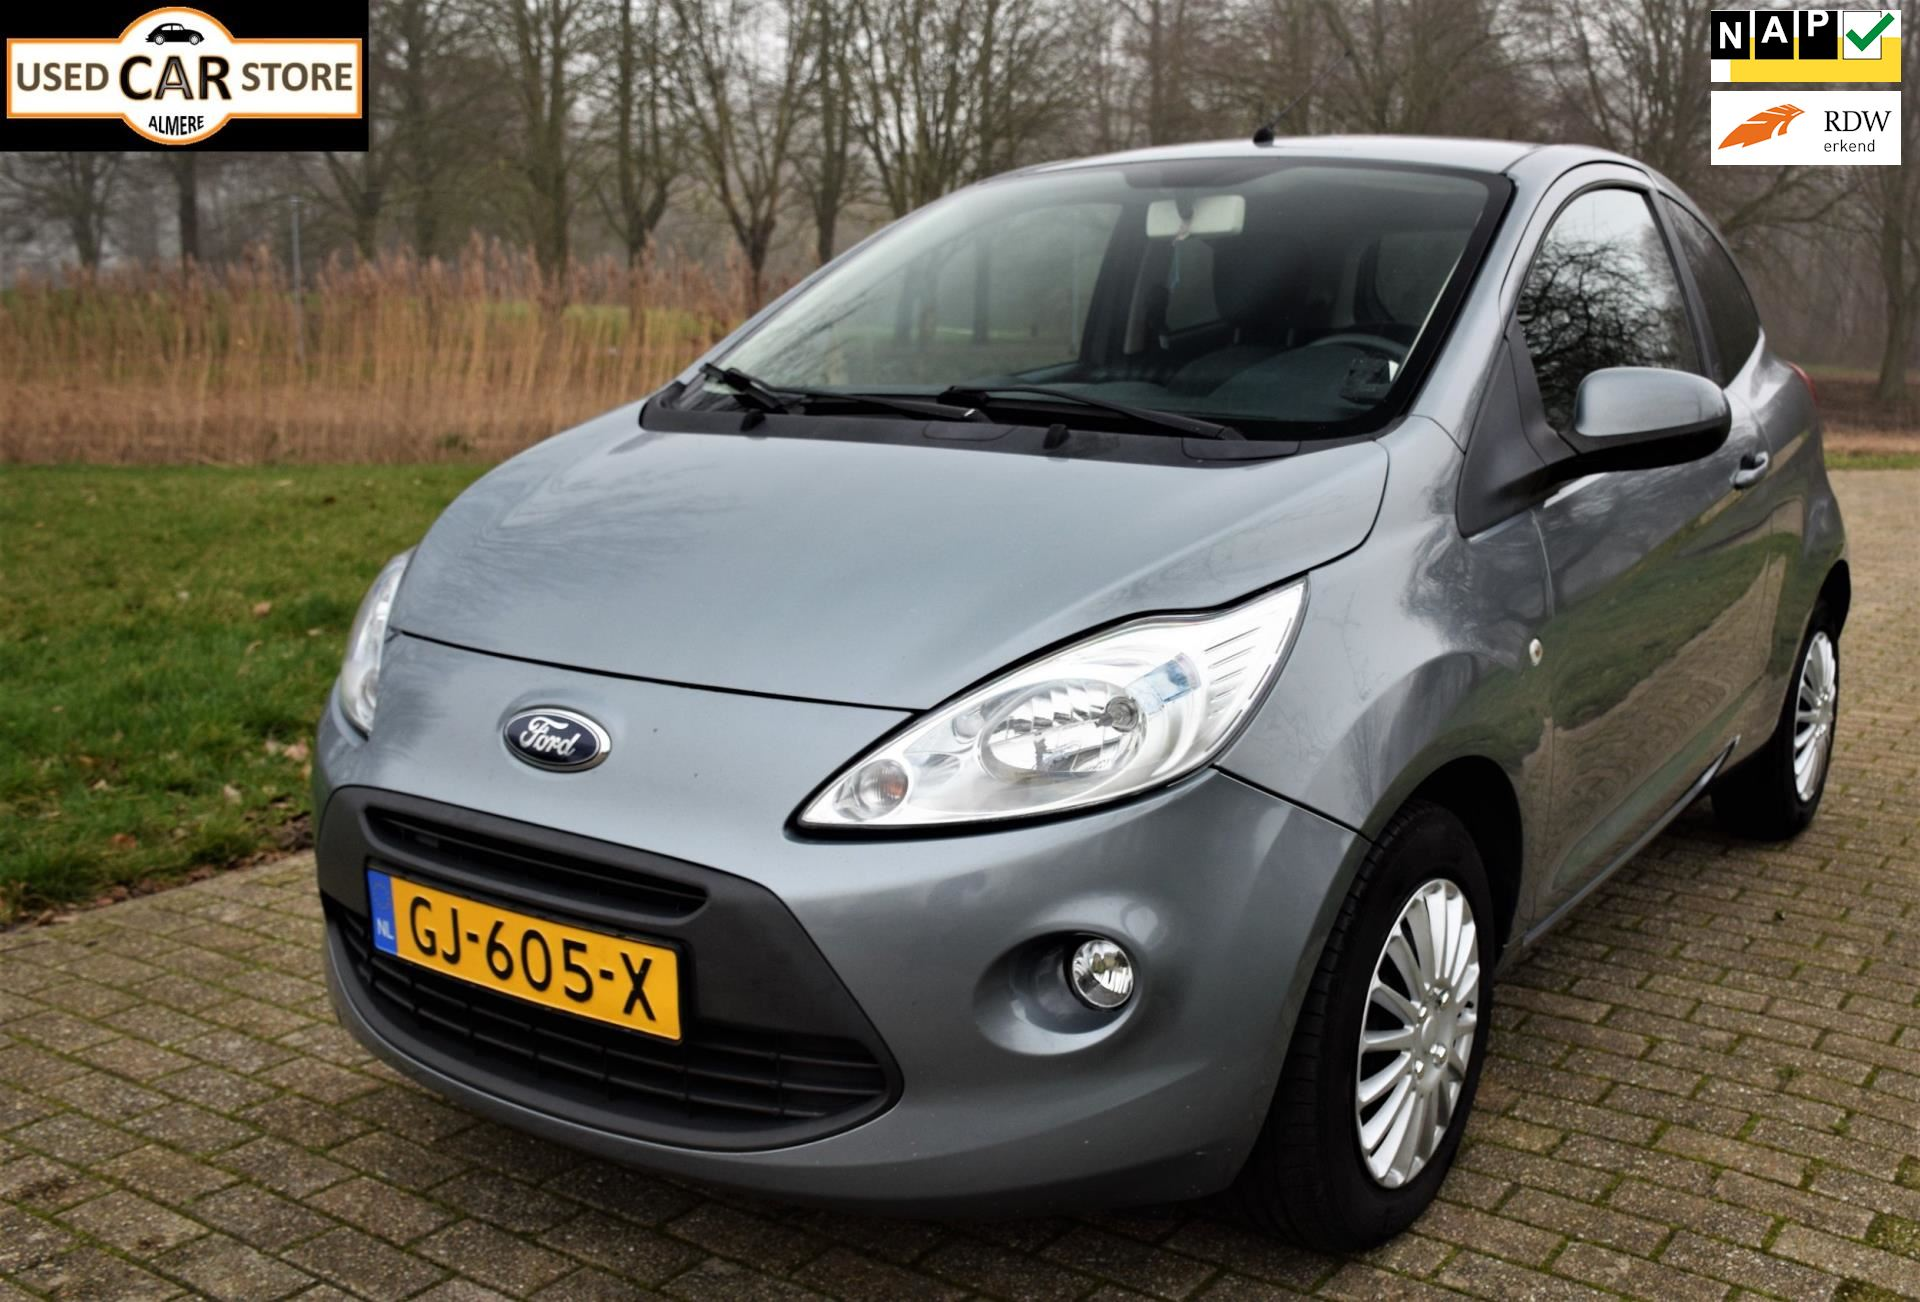 Ford Ka occasion - Used Car Store Almere